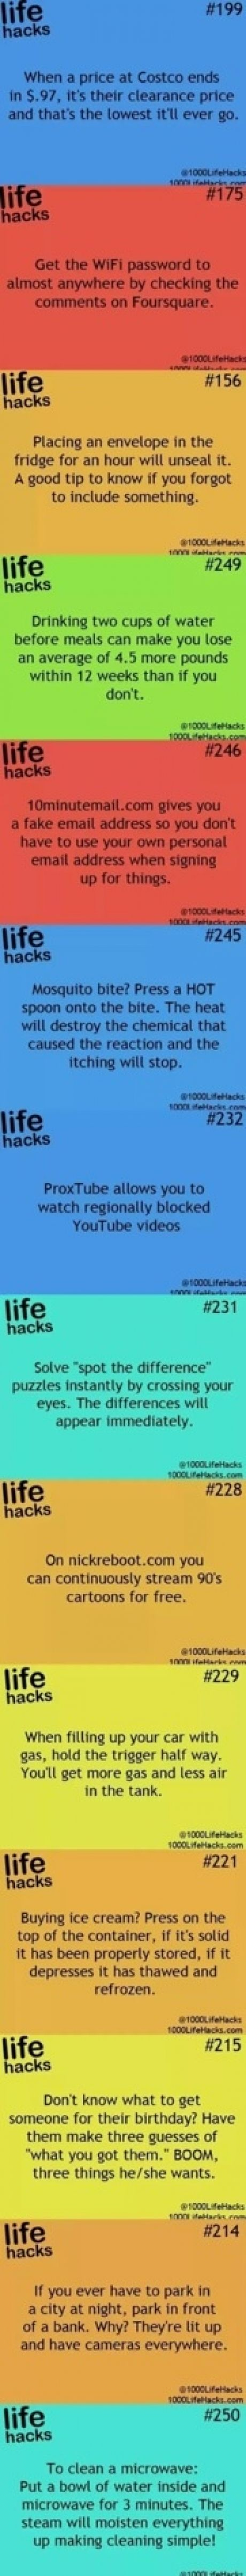 Life hacks. Some of these are genius!